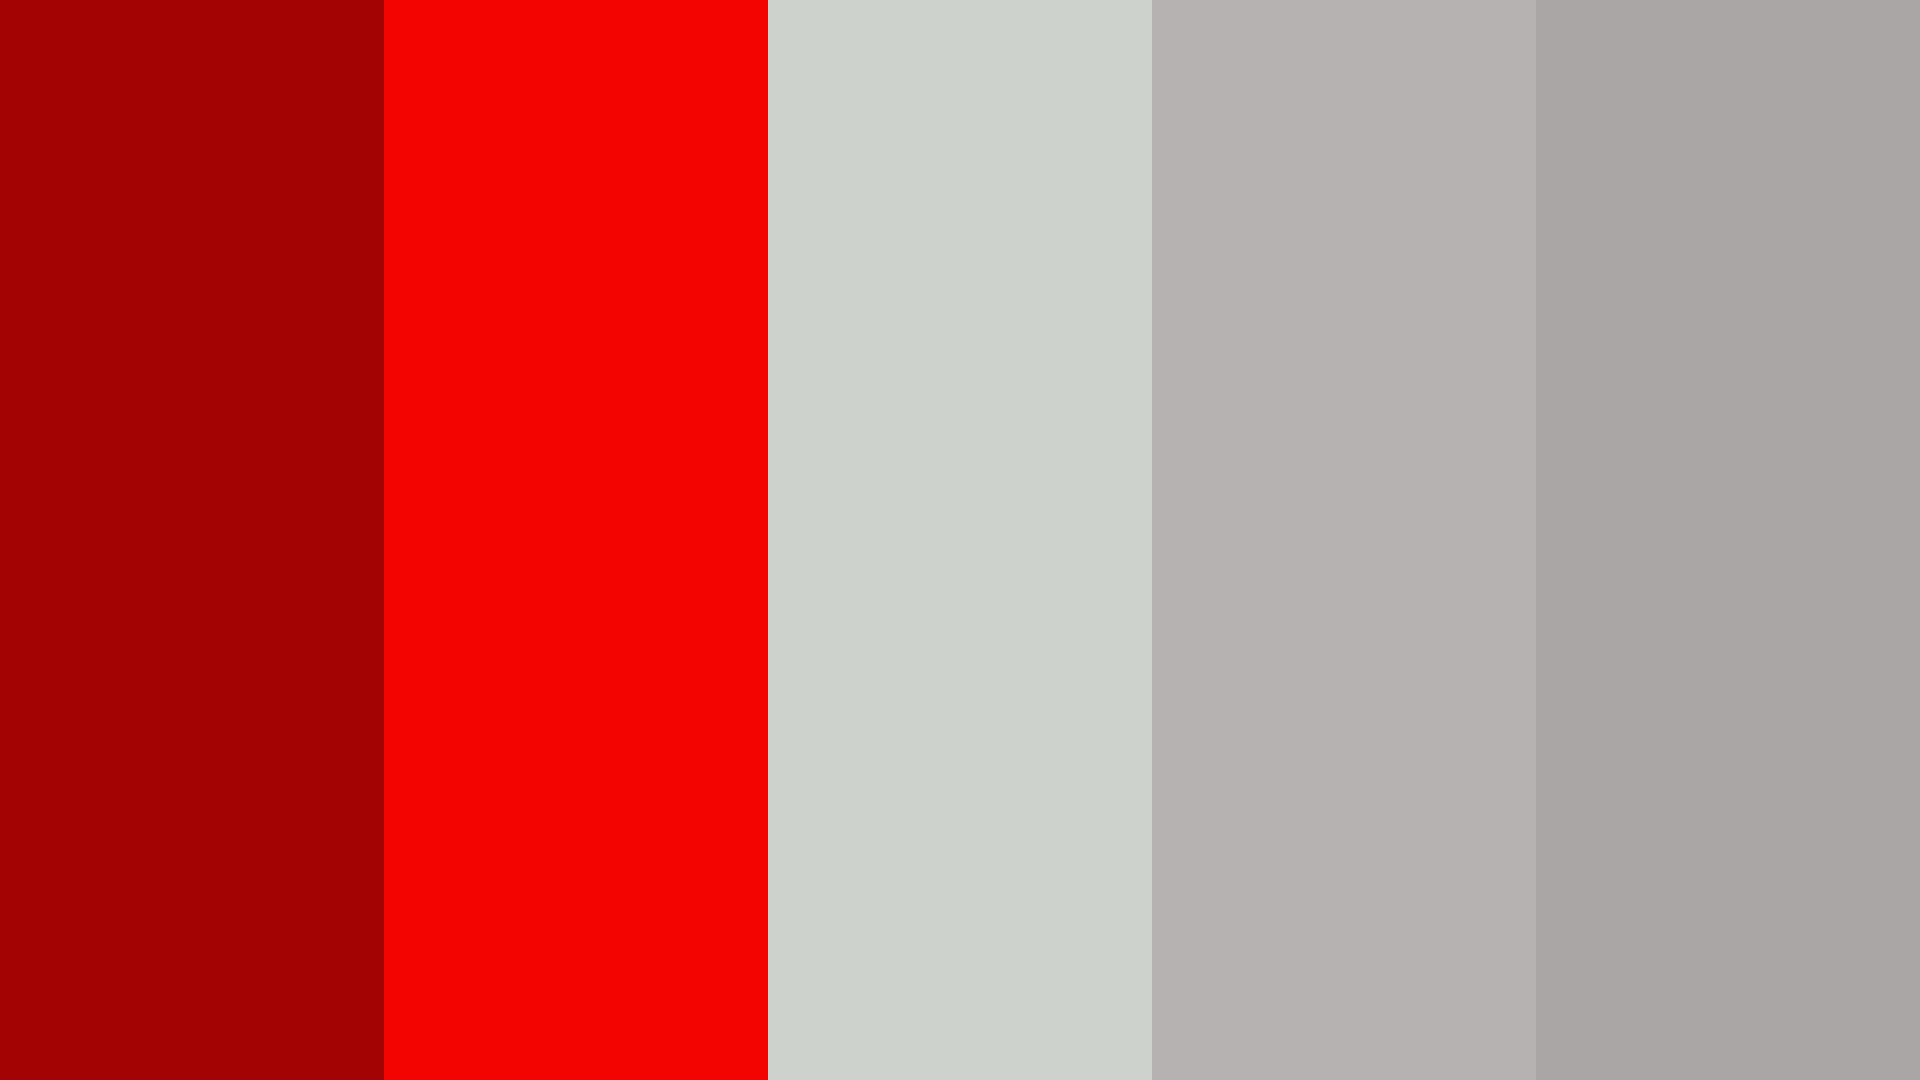 Silver Gift With Red Ribbon Color Palette